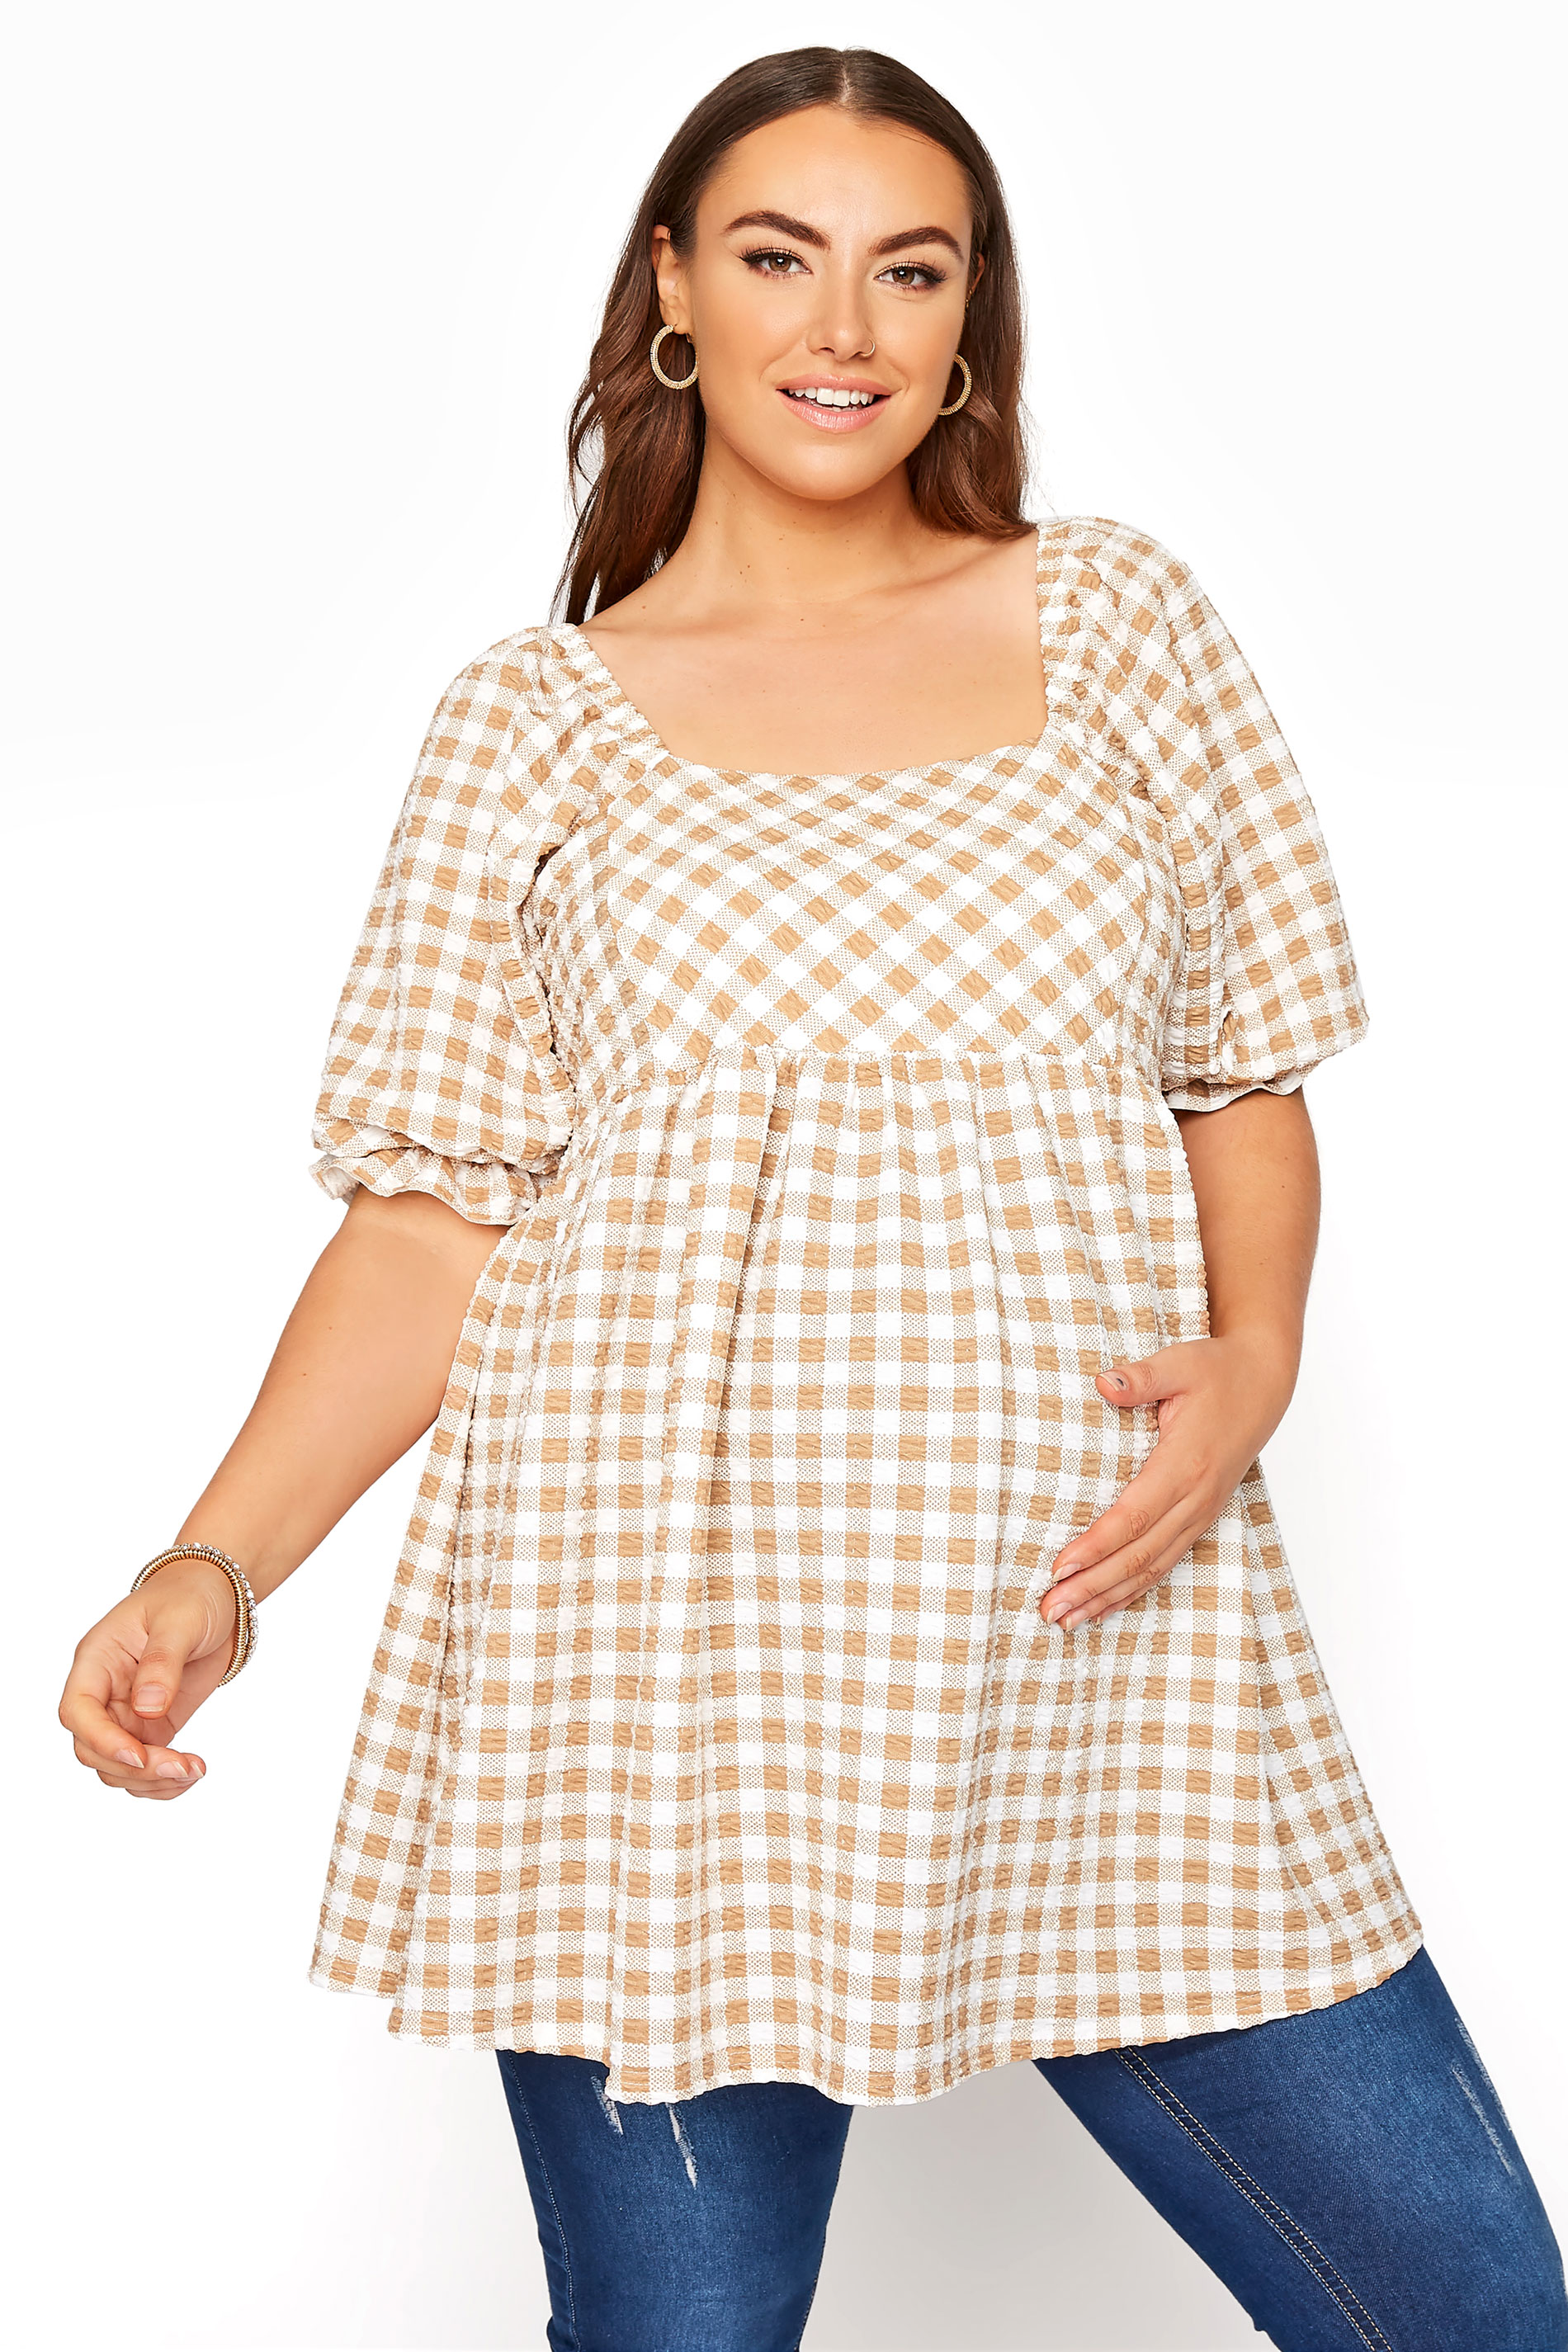 BUMP IT UP MATERNITY Ivory Gingham Square Neck Top_A.jpg